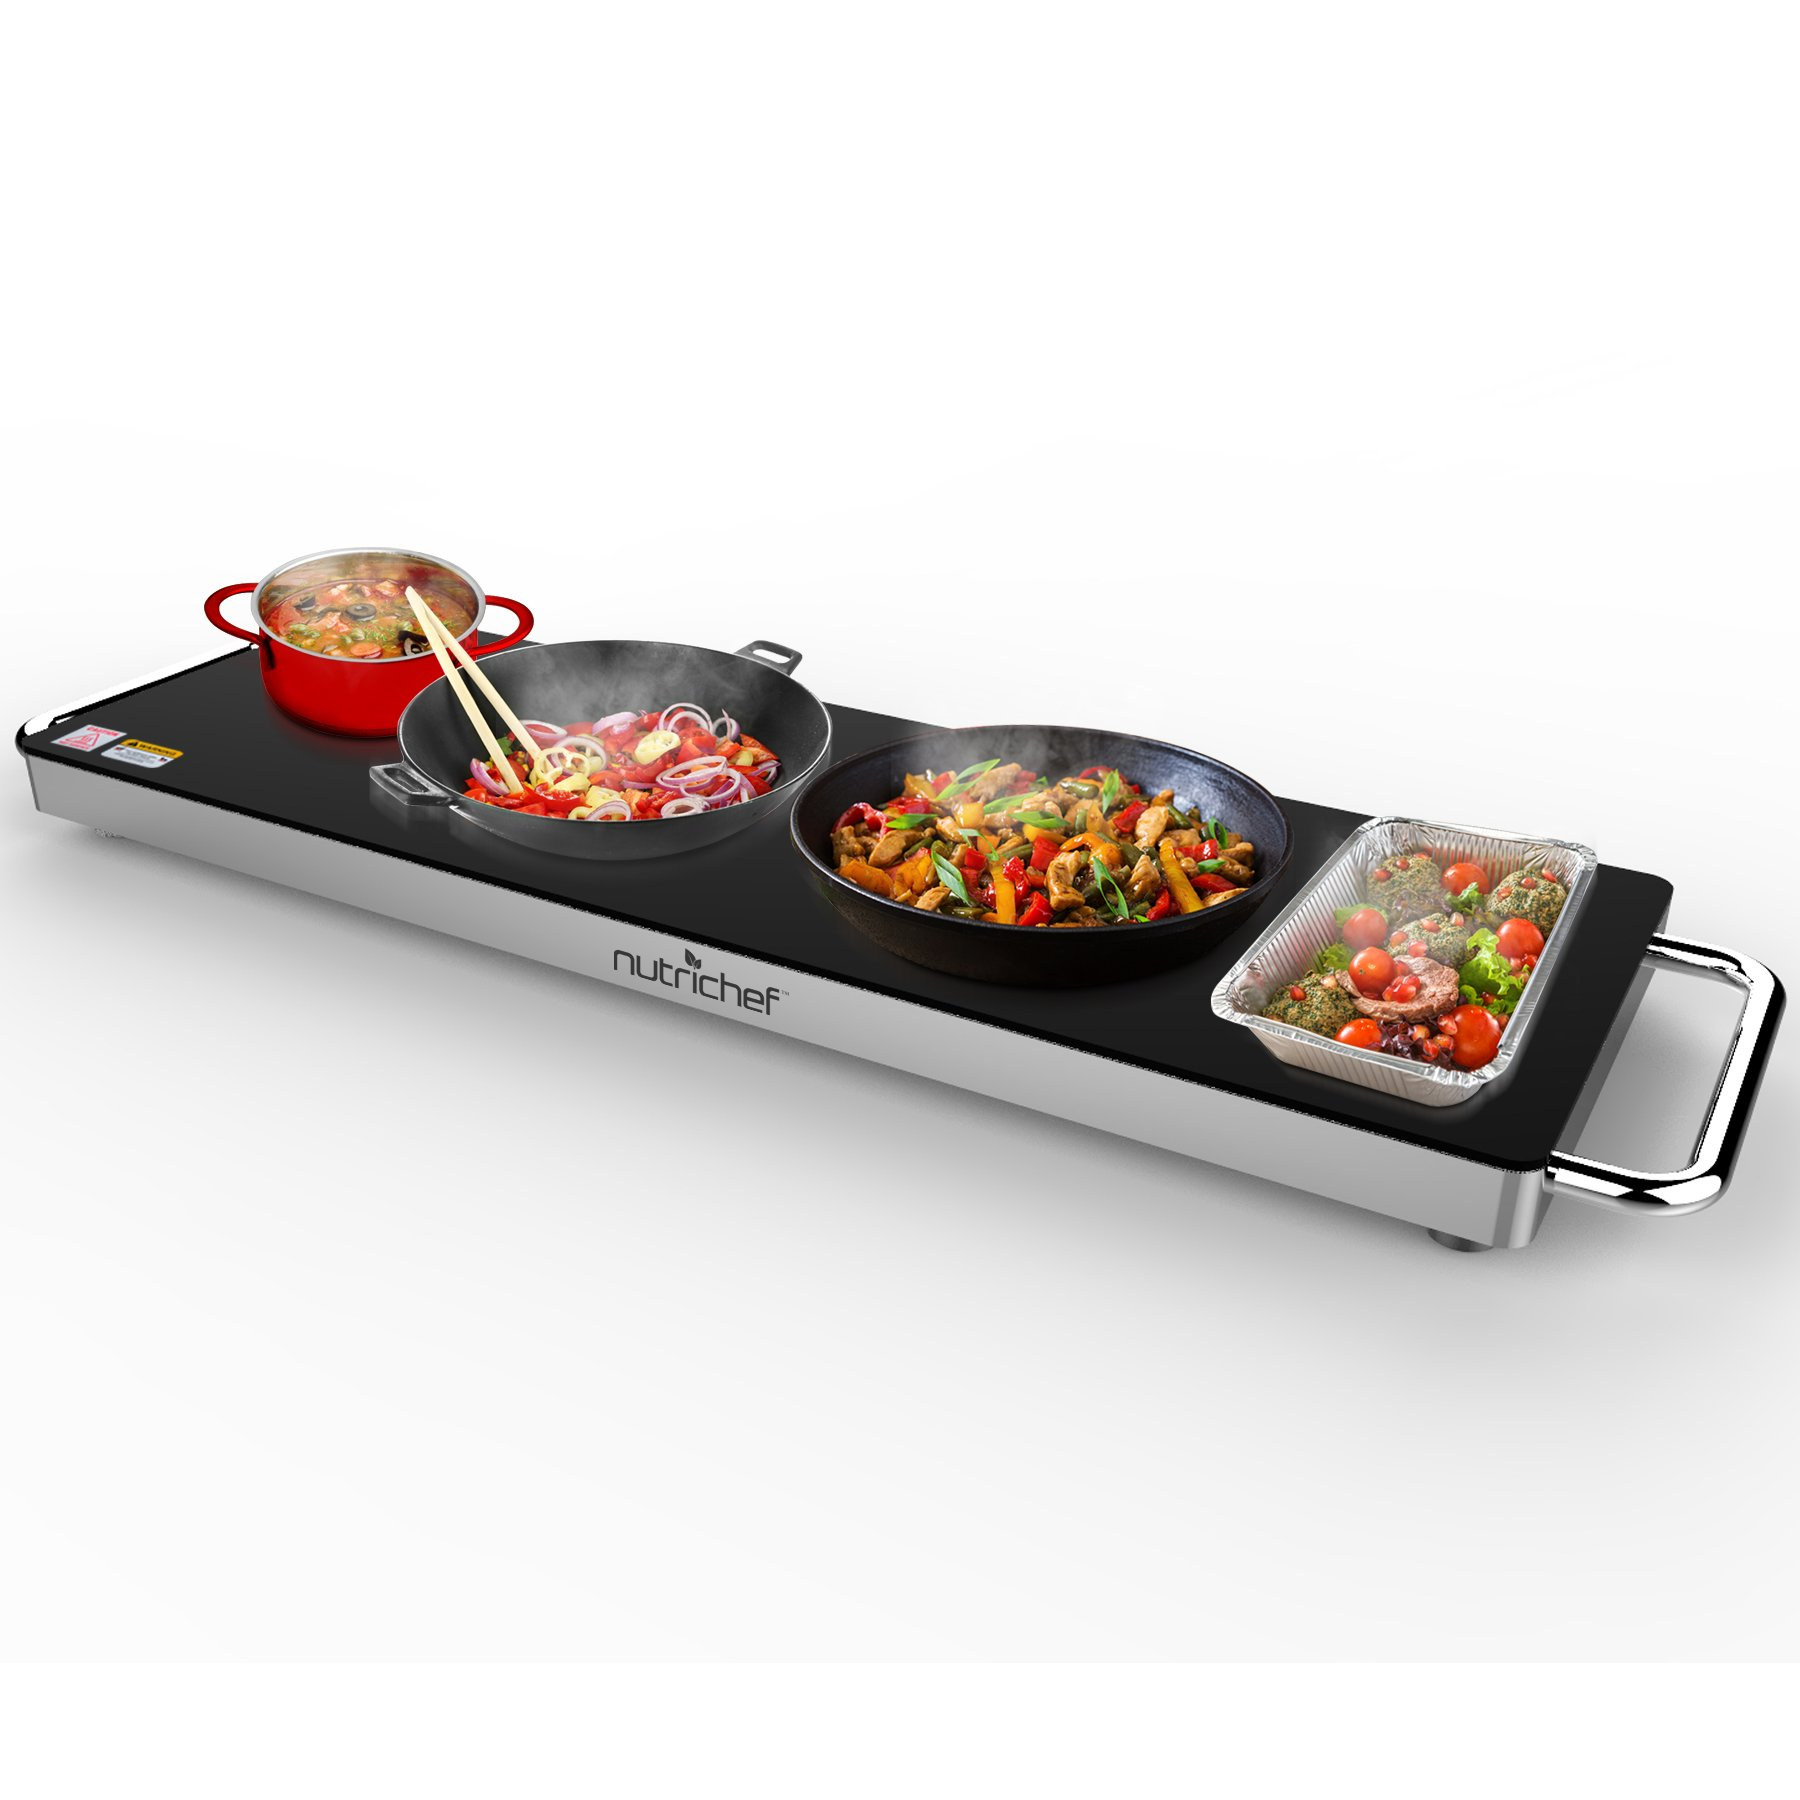 Portable Electric Food Hot Plate - Stainless Steel Warming Tray Dish Warmer w/ Black Glass Top - Keep Food Warm for Buffet Serving, Restaurant, Parties, Table or Countertop Use - NutriChef PKWTR40 by Nutrichef